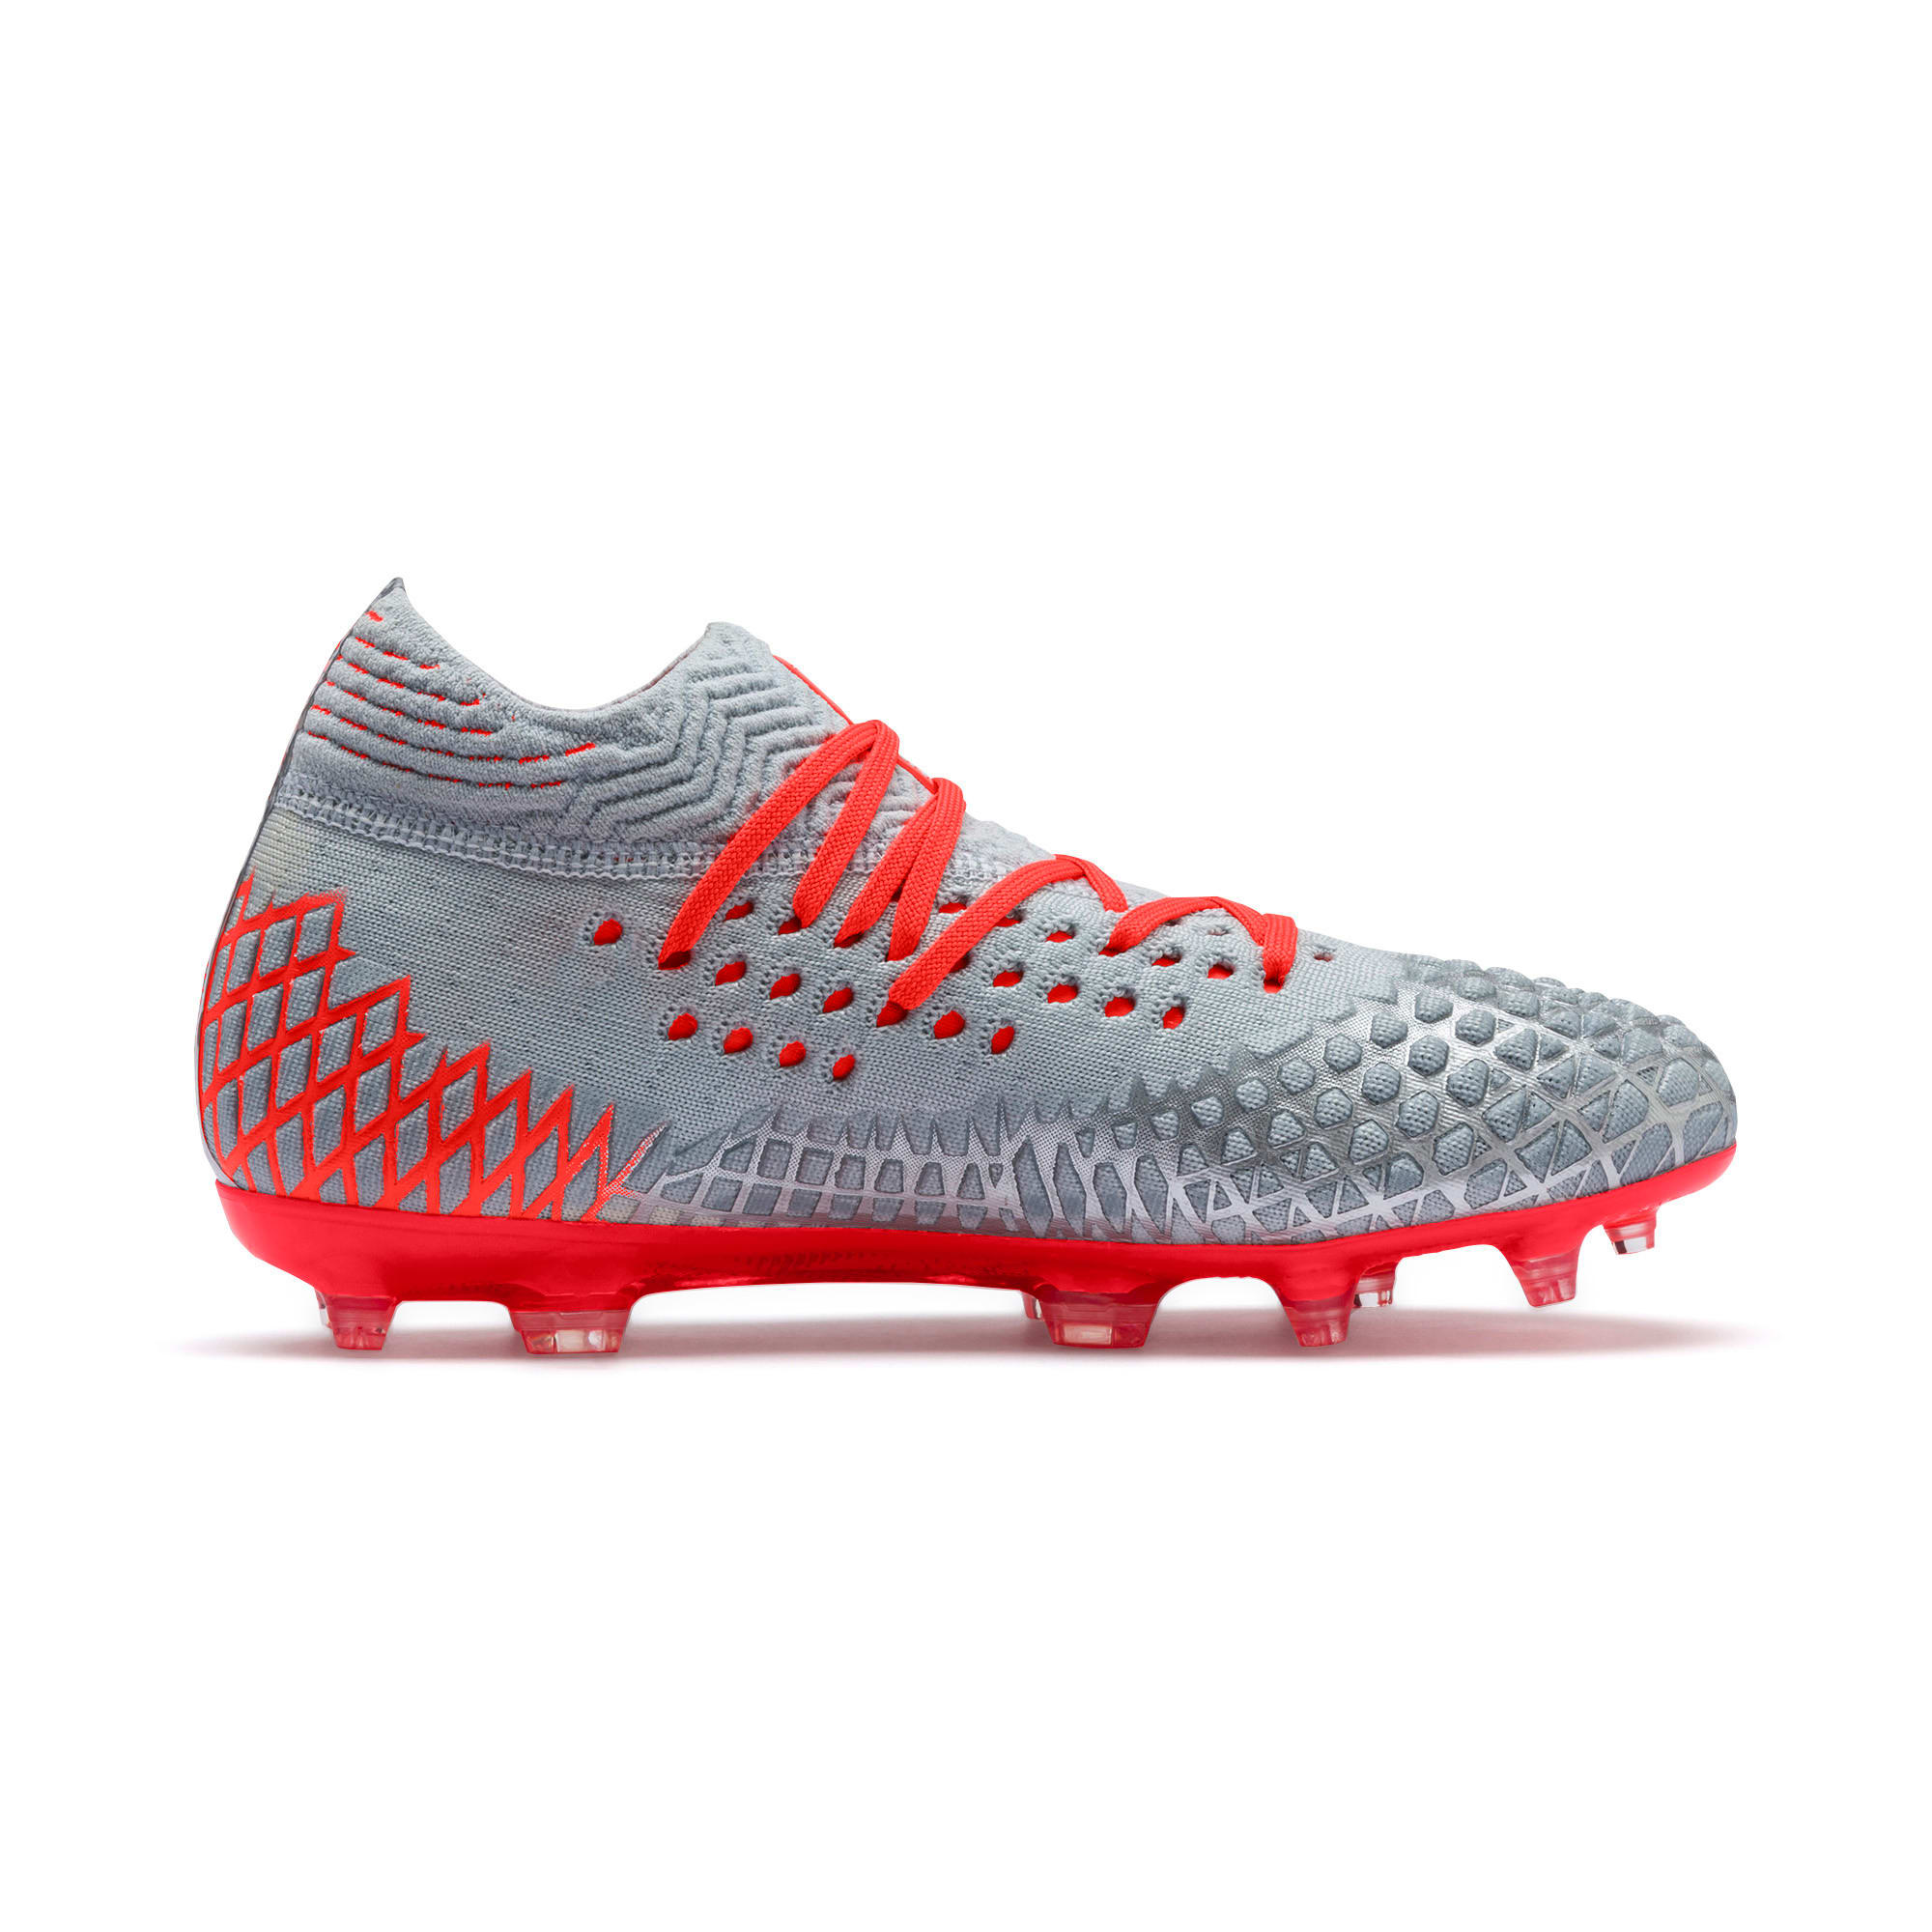 Thumbnail 5 of FUTURE 4.1 NETFIT Youth Football Boots, Blue-Nrgy Red-High Risk Red, medium